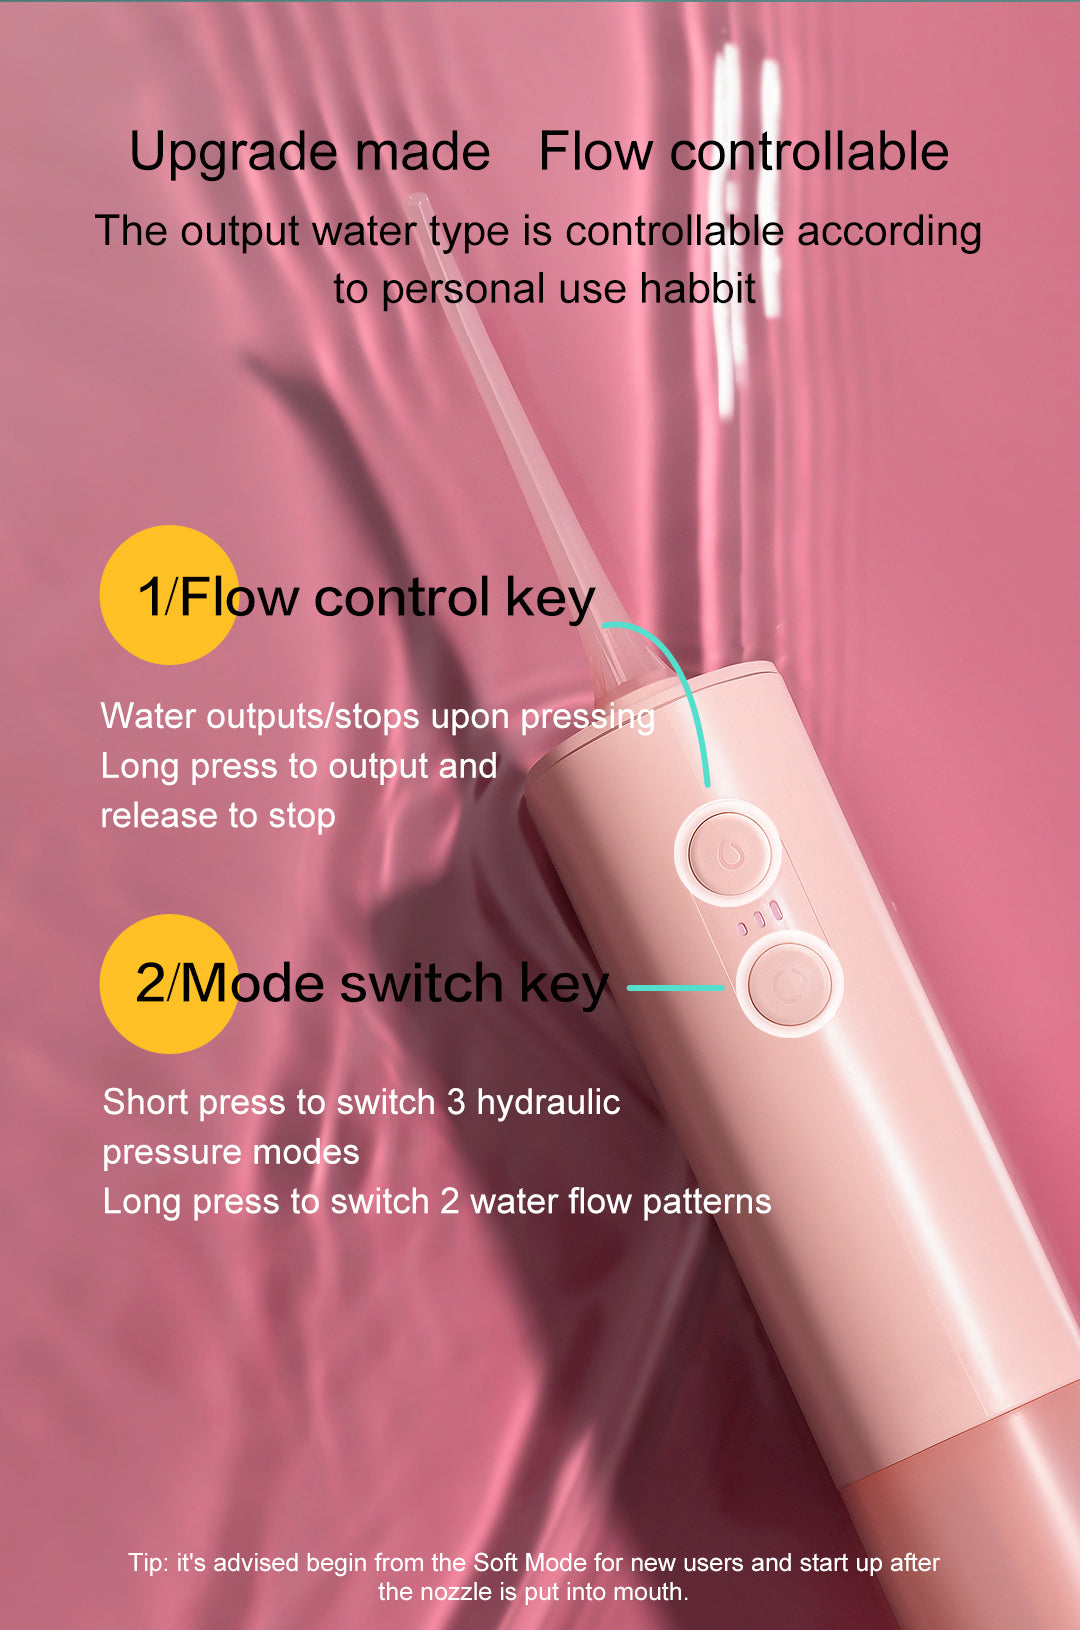 DR.BEI F2 Portable Dental Water Flosser  Xiaomi Youpin DR.BEI Portable Water Flosser F2 Oral Irrigator Cordless Dental Water Jet USB Rechargeable IPX7 Irrigator for Cleaning Teeth